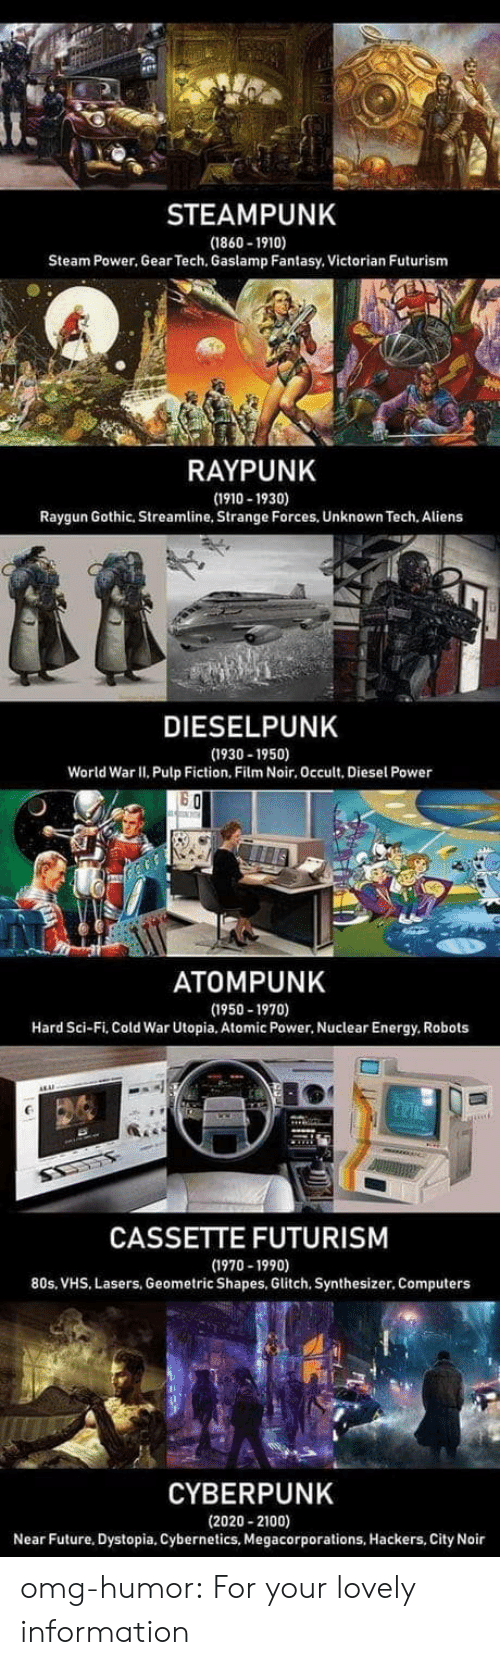 sci: STEAMPUNK  (1860-1910)  Steam Power, Gear Tech, Gaslamp Fantasy, Victorian Futurism  RAYPUNK  (1910-1930)  Raygun Gothic, Streamline, Strange Forces, Unknown Tech. Aliens  DIESELPUNK  (1930-1950)  World War II. Pulp Fiction, Film Noir, Occult, Diesel Power  ATOMPUNK  (1950-1970)  Hard Sci-Fi, Cold War Utopia, Atomic Power, Nuclear Energy, Robots  CASSETTE FUTURISM  (1970-1990)  80s, VHS, Lasers, Geometric Shapes, Glitch, Synthesizer. Computers  CYBERPUNK  (2020-2100)  Near Future, Dystopia, Cybernetics, Megacorporations, Hackers, City Noir omg-humor:  For your lovely information